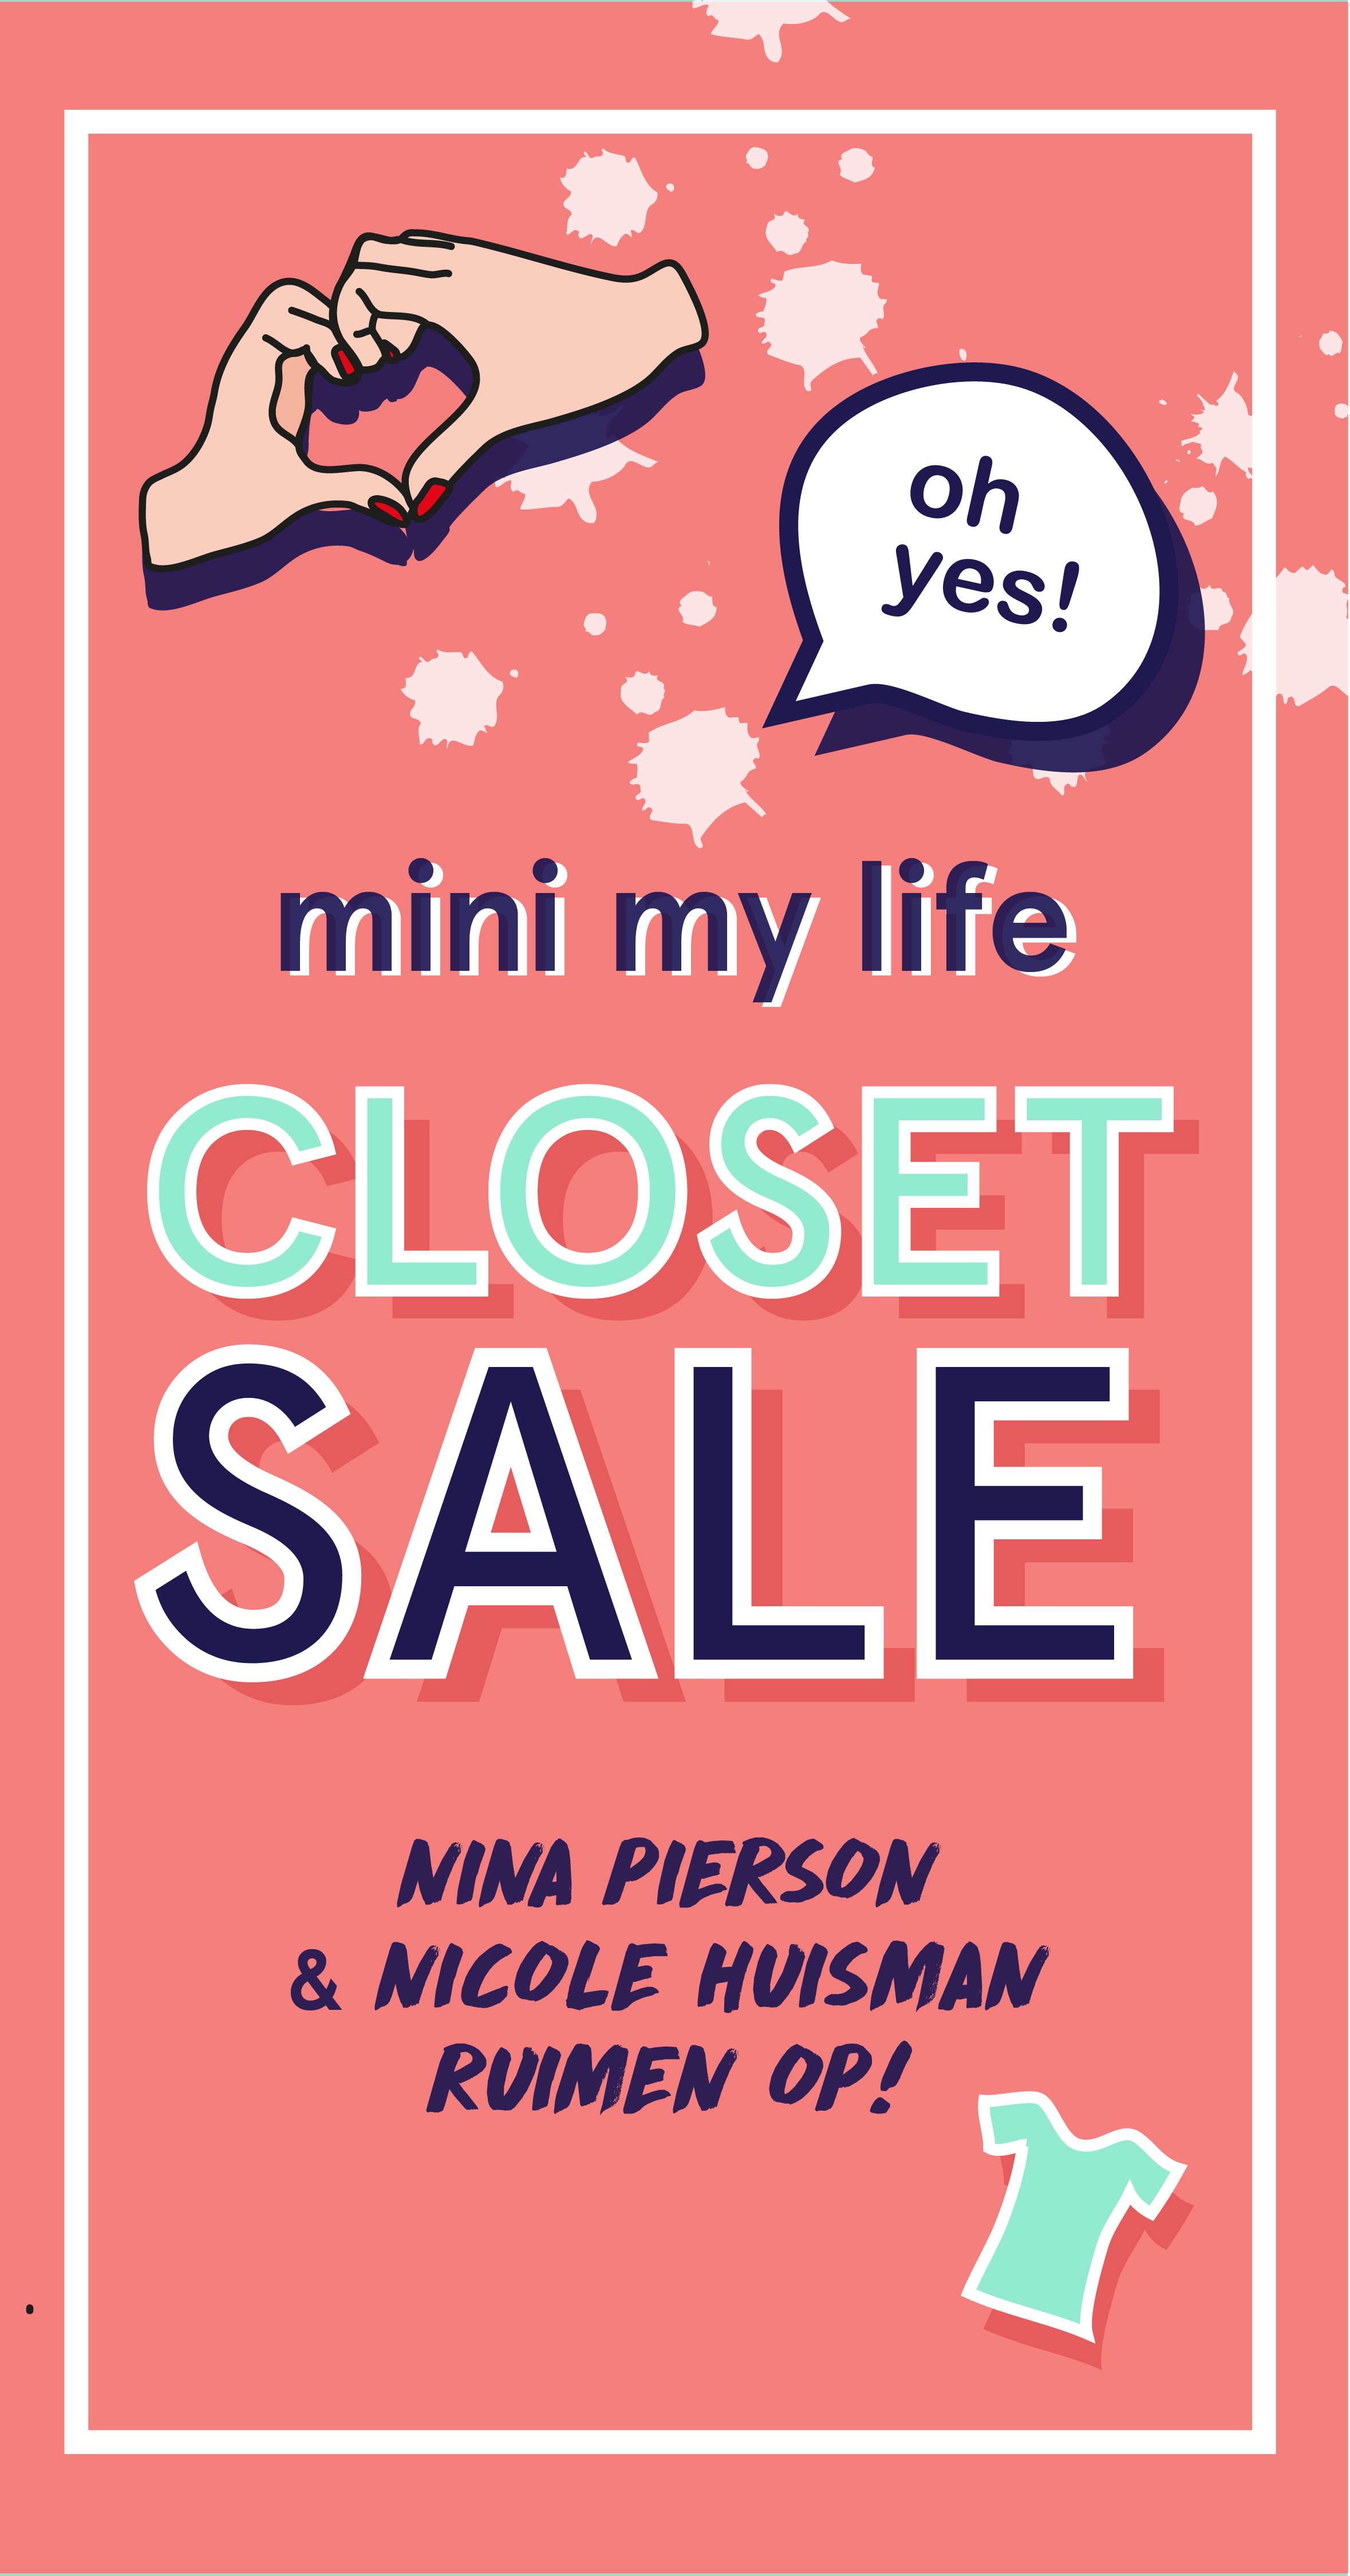 mini my life closet sale-02